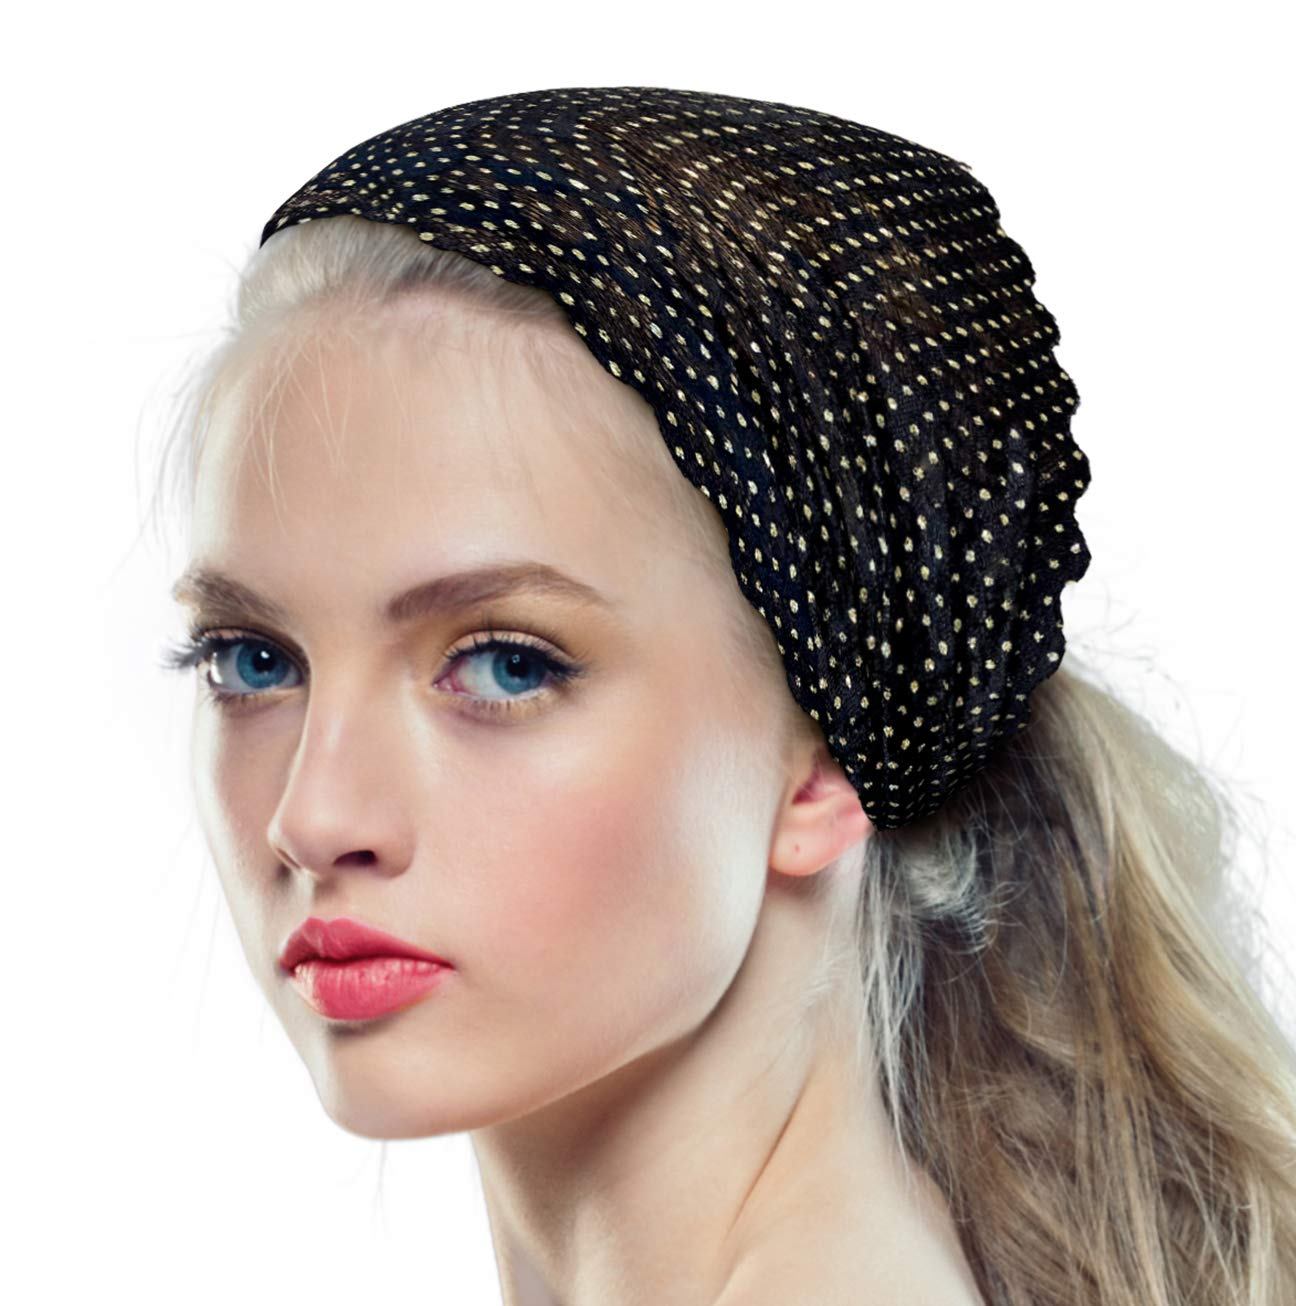 ShariRose Stunning Lace Head-Band Super Wide Floral in Black with Gold Lurex! Handmade (Black Gold)